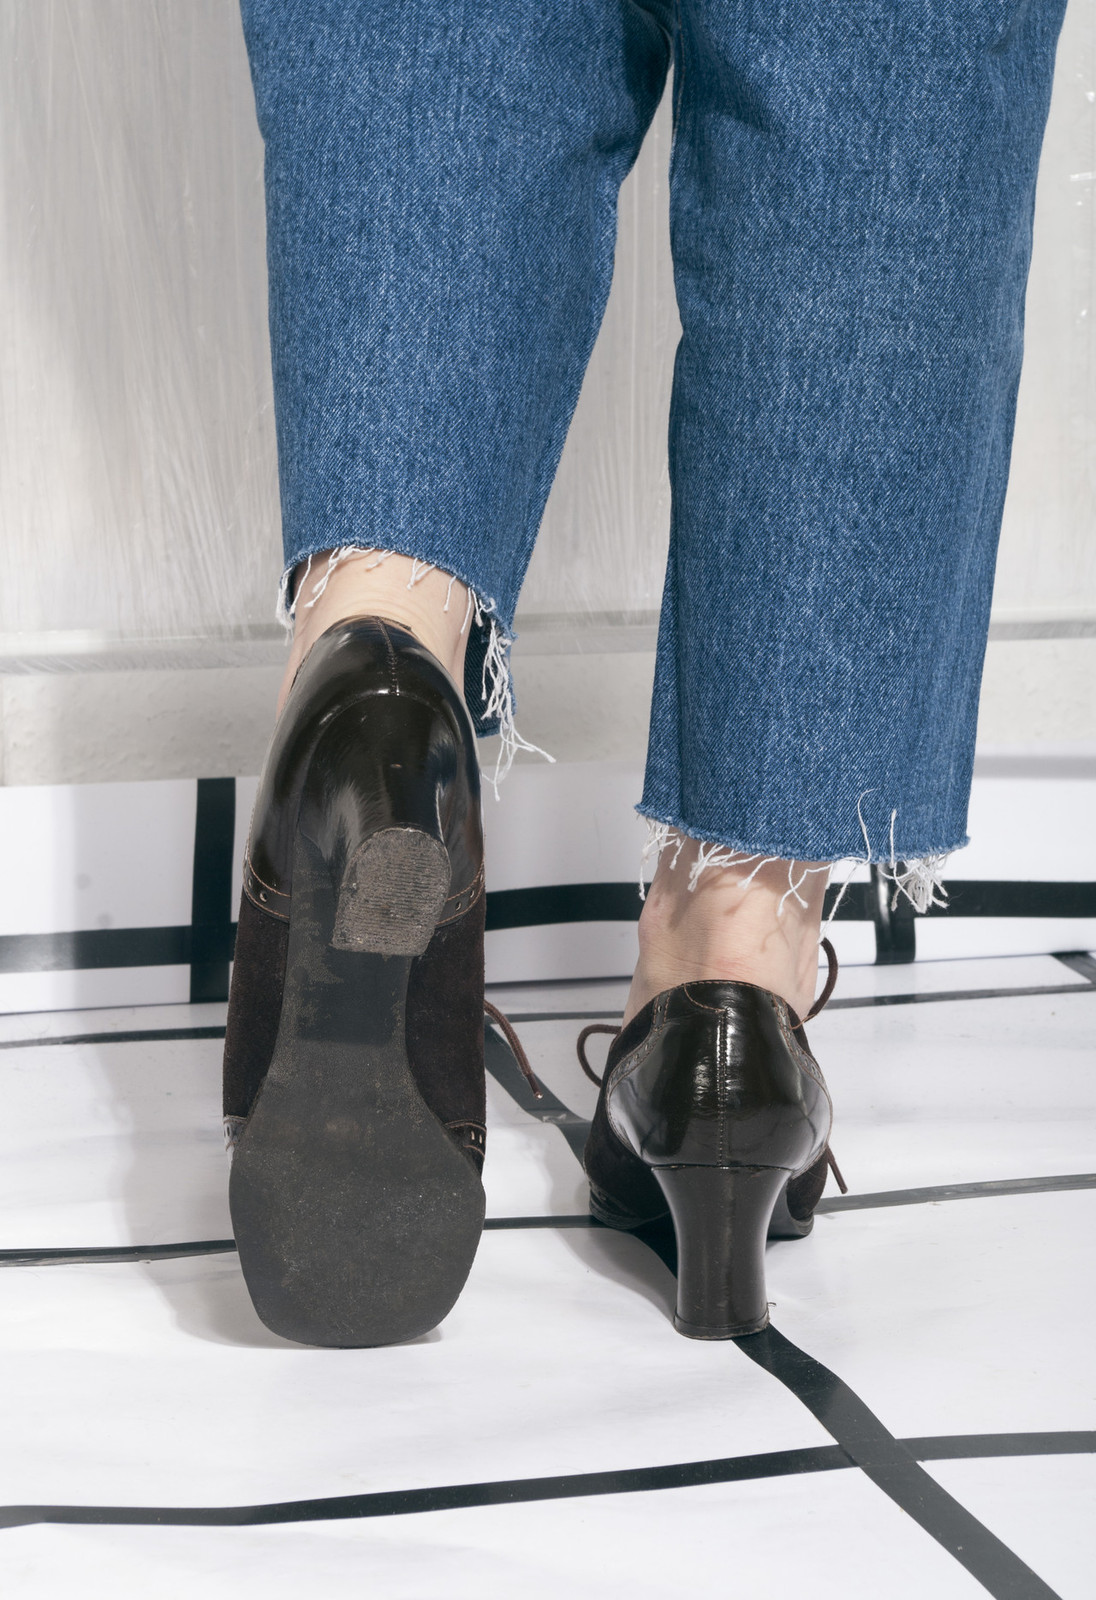 c8c70d5a072c 70s vintage leather shoes w chunky heels and similar items